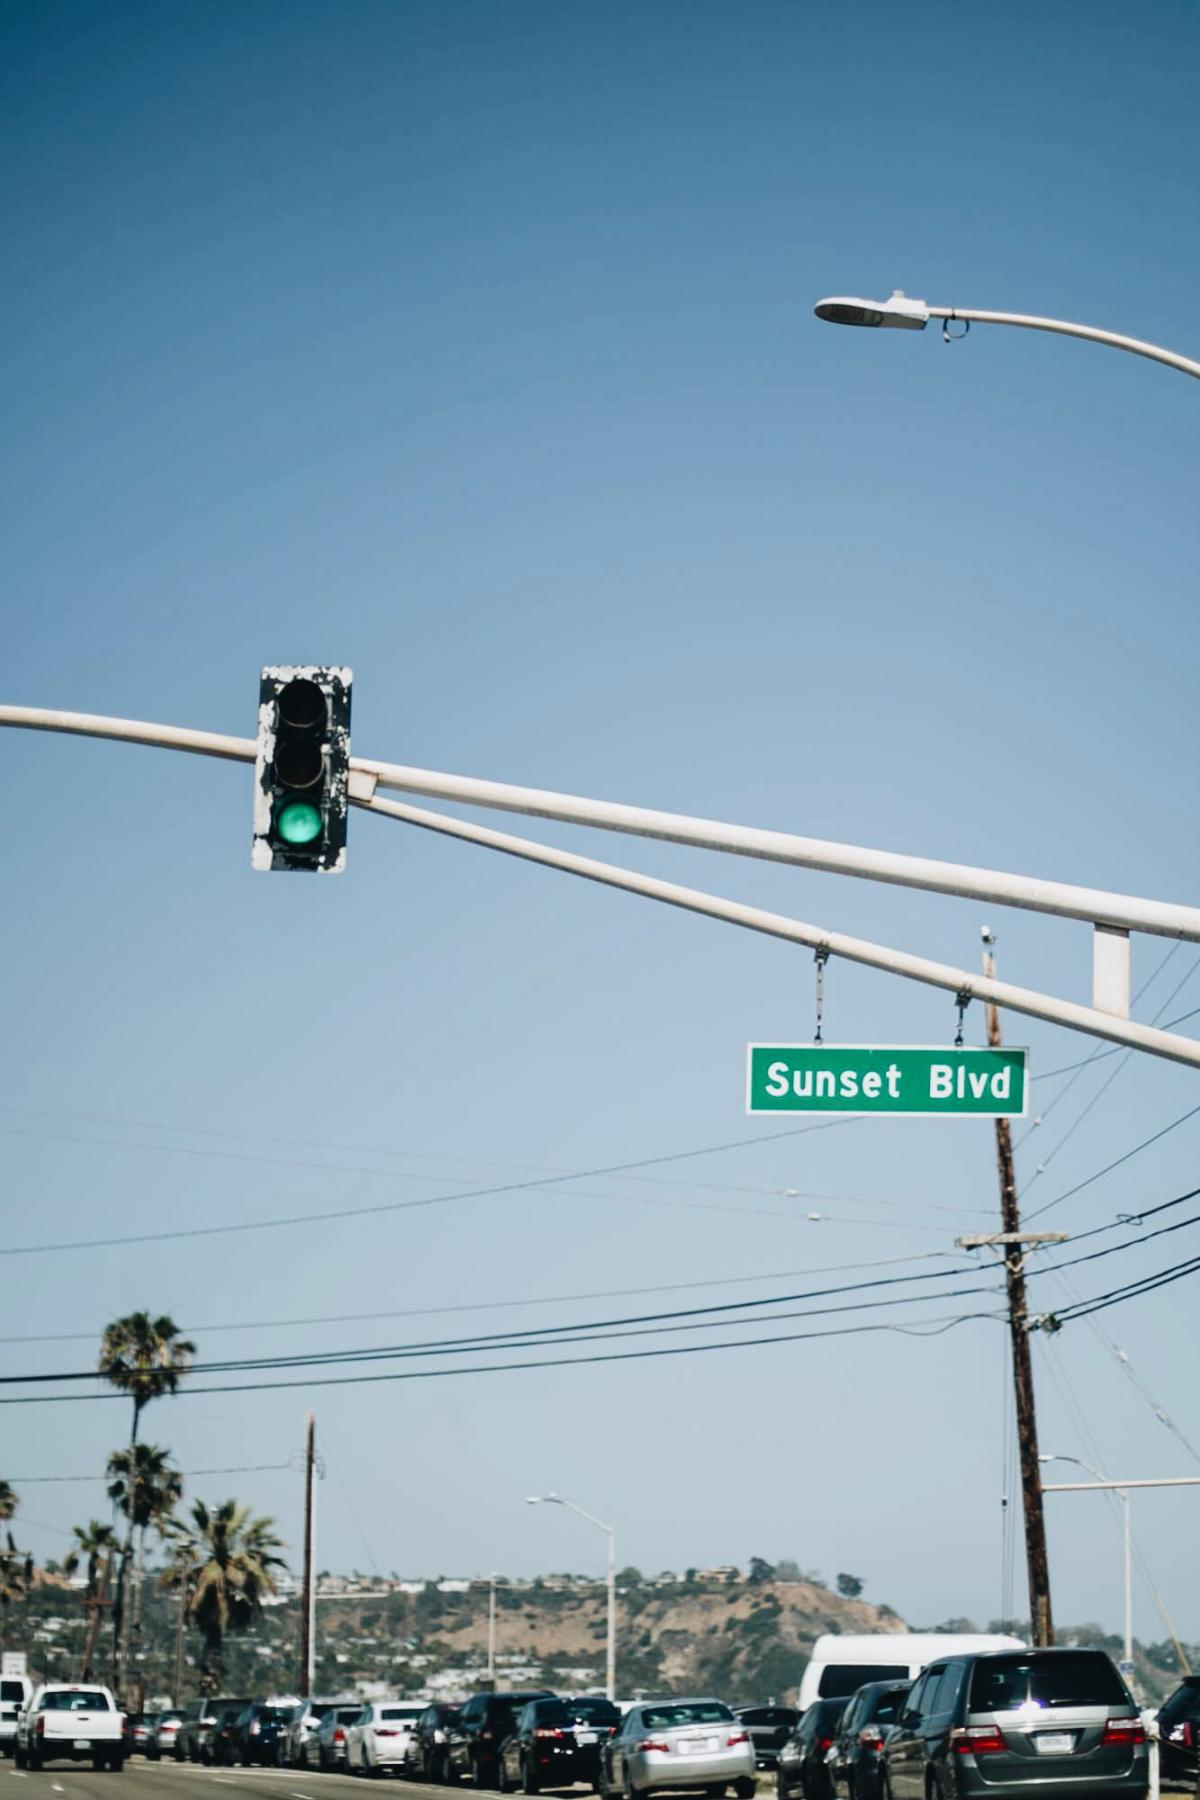 sunset blvd street sign, USA, los angeles, LA, american road trip, wanderlust, west cost,